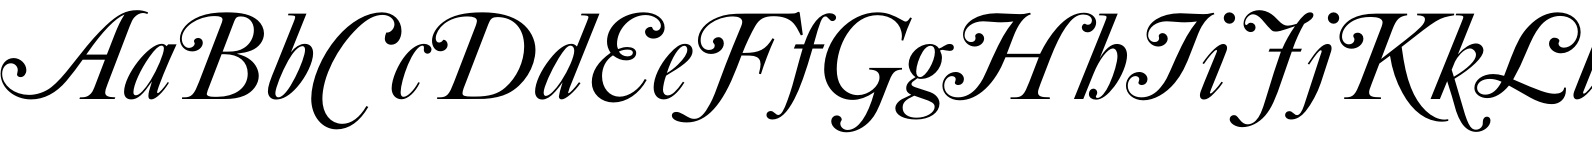 Caslon No540 Swash D Regular Italic